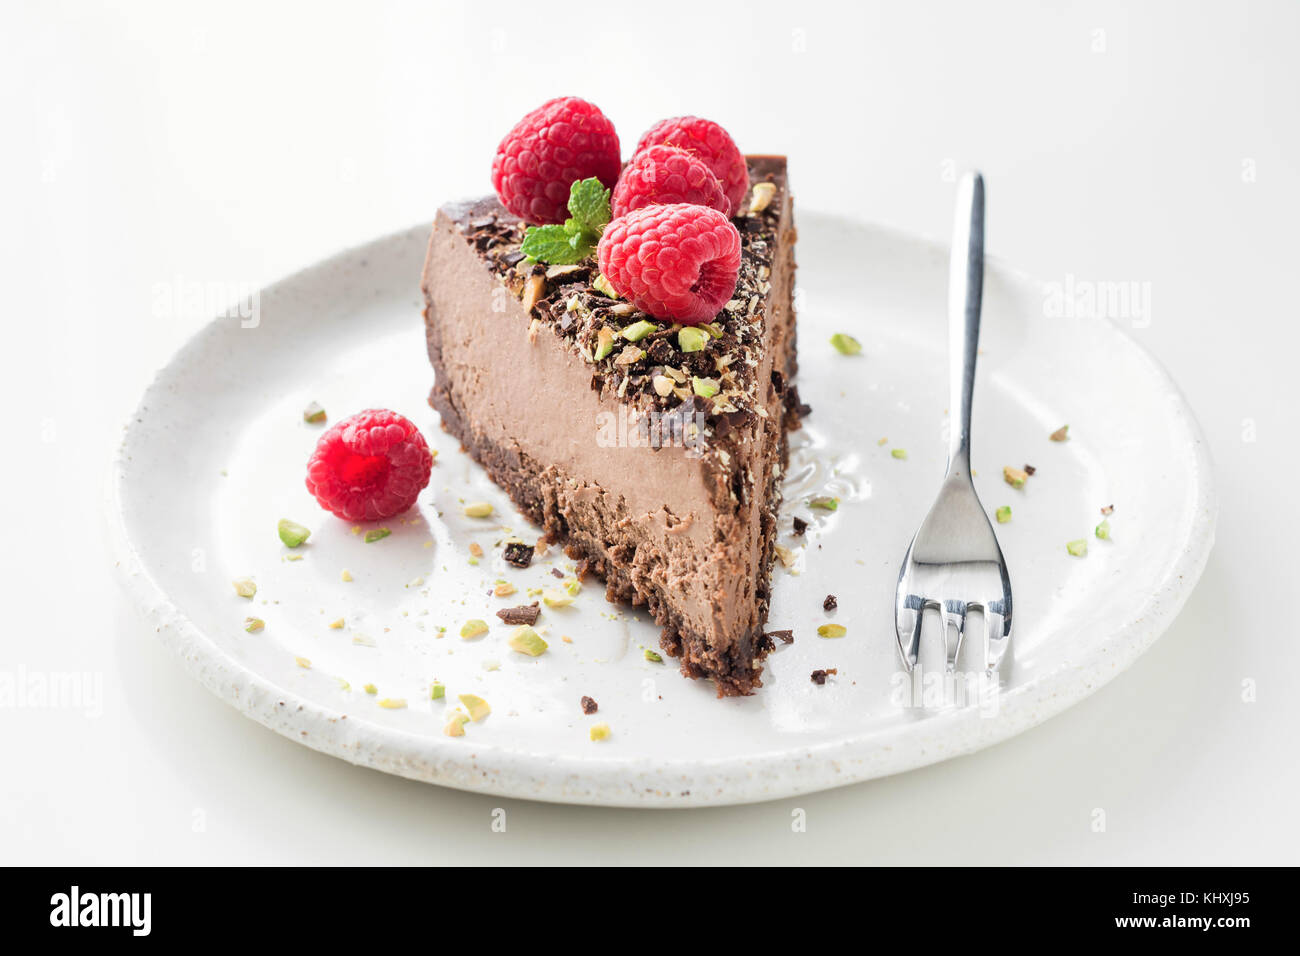 Slice of chocolate cake cheesecake decorated with crushed pistachio nuts, raspberries and mint leaf on white background. - Stock Image